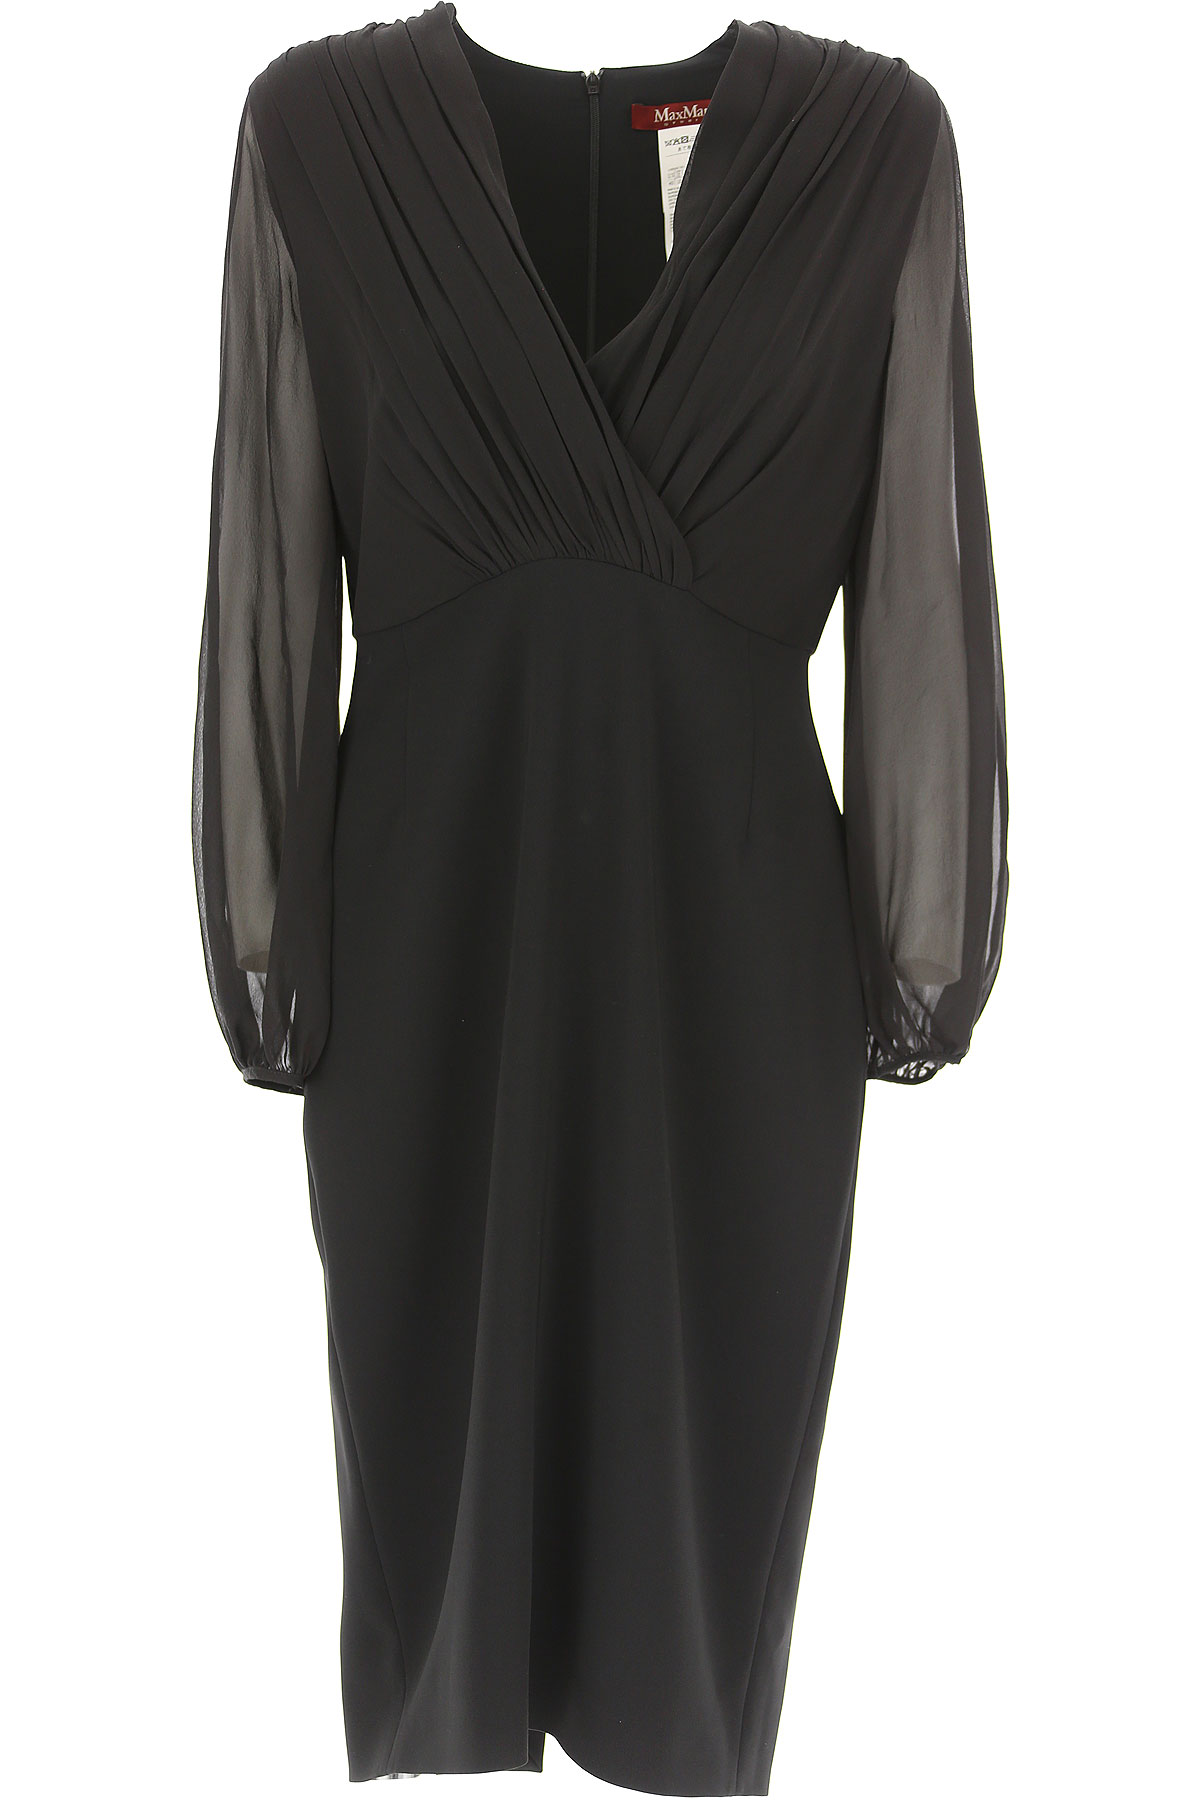 Image of Weekend by Max Mara Dress for Women, Evening Cocktail Party, Black, Silk, 2017, 4 6 8